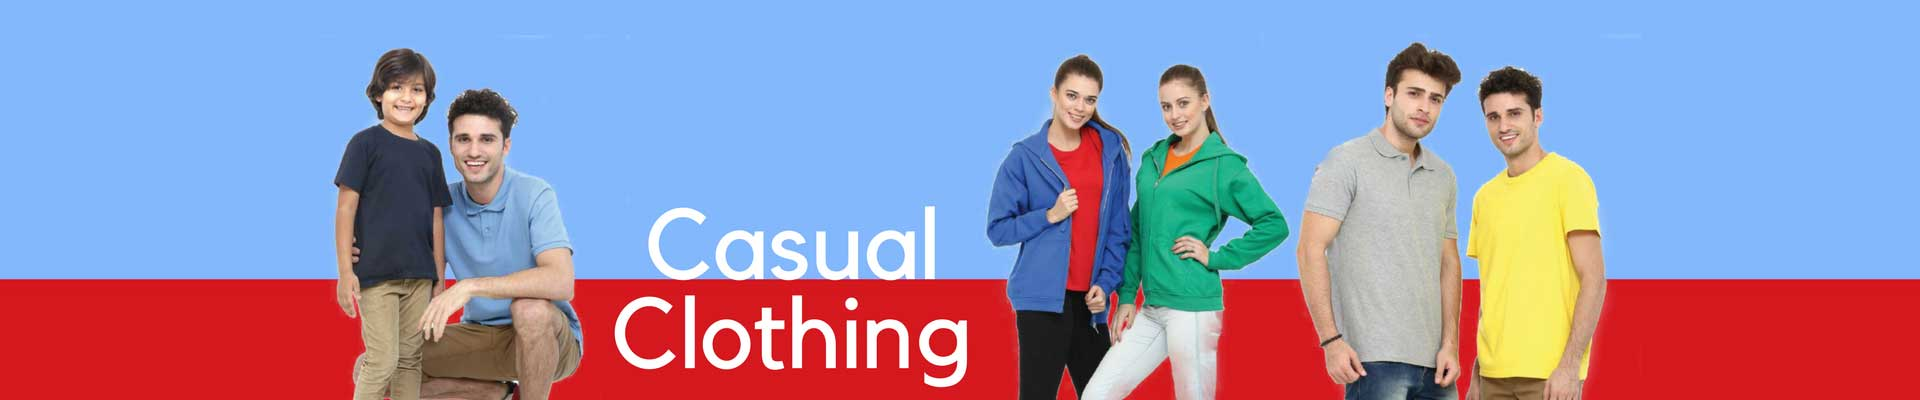 Casual-Clothing-banner